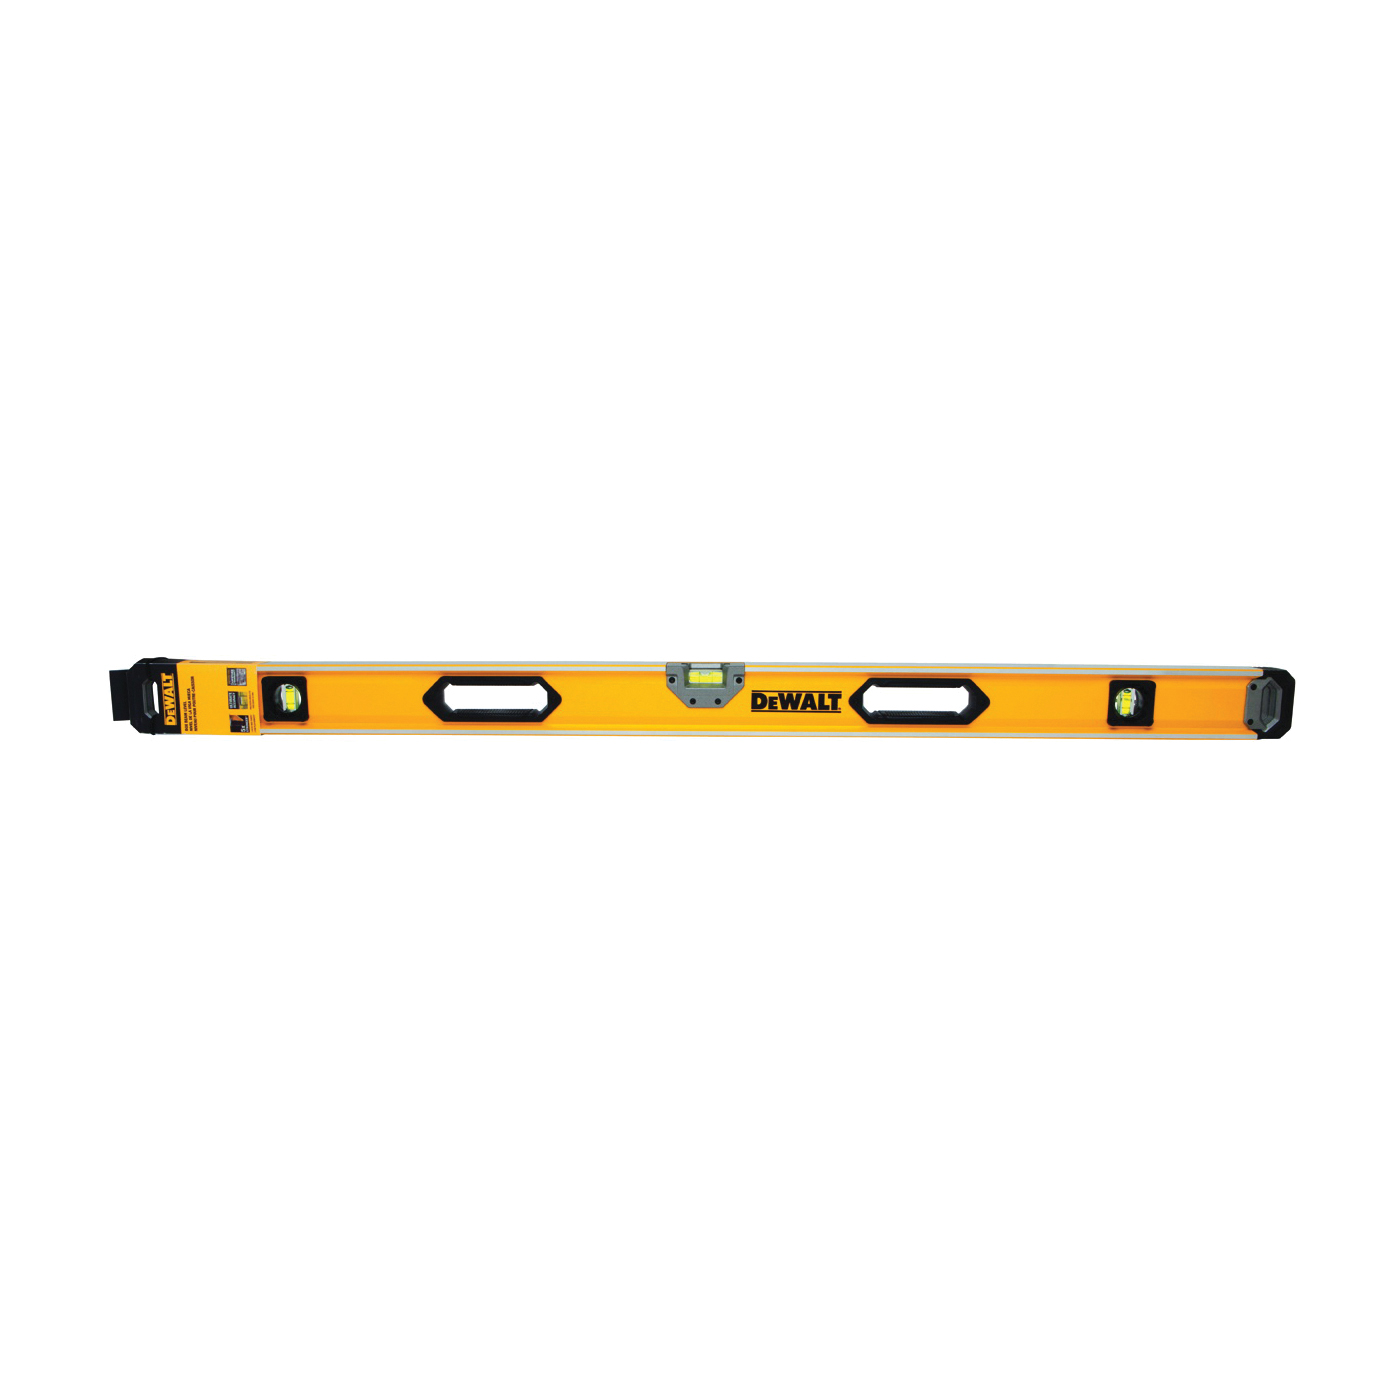 Picture of DeWALT DWHT43248 Box Beam Level, 48 in L, 3 -Vial, 2 -Hang Hole, Non-Magnetic, Aluminum